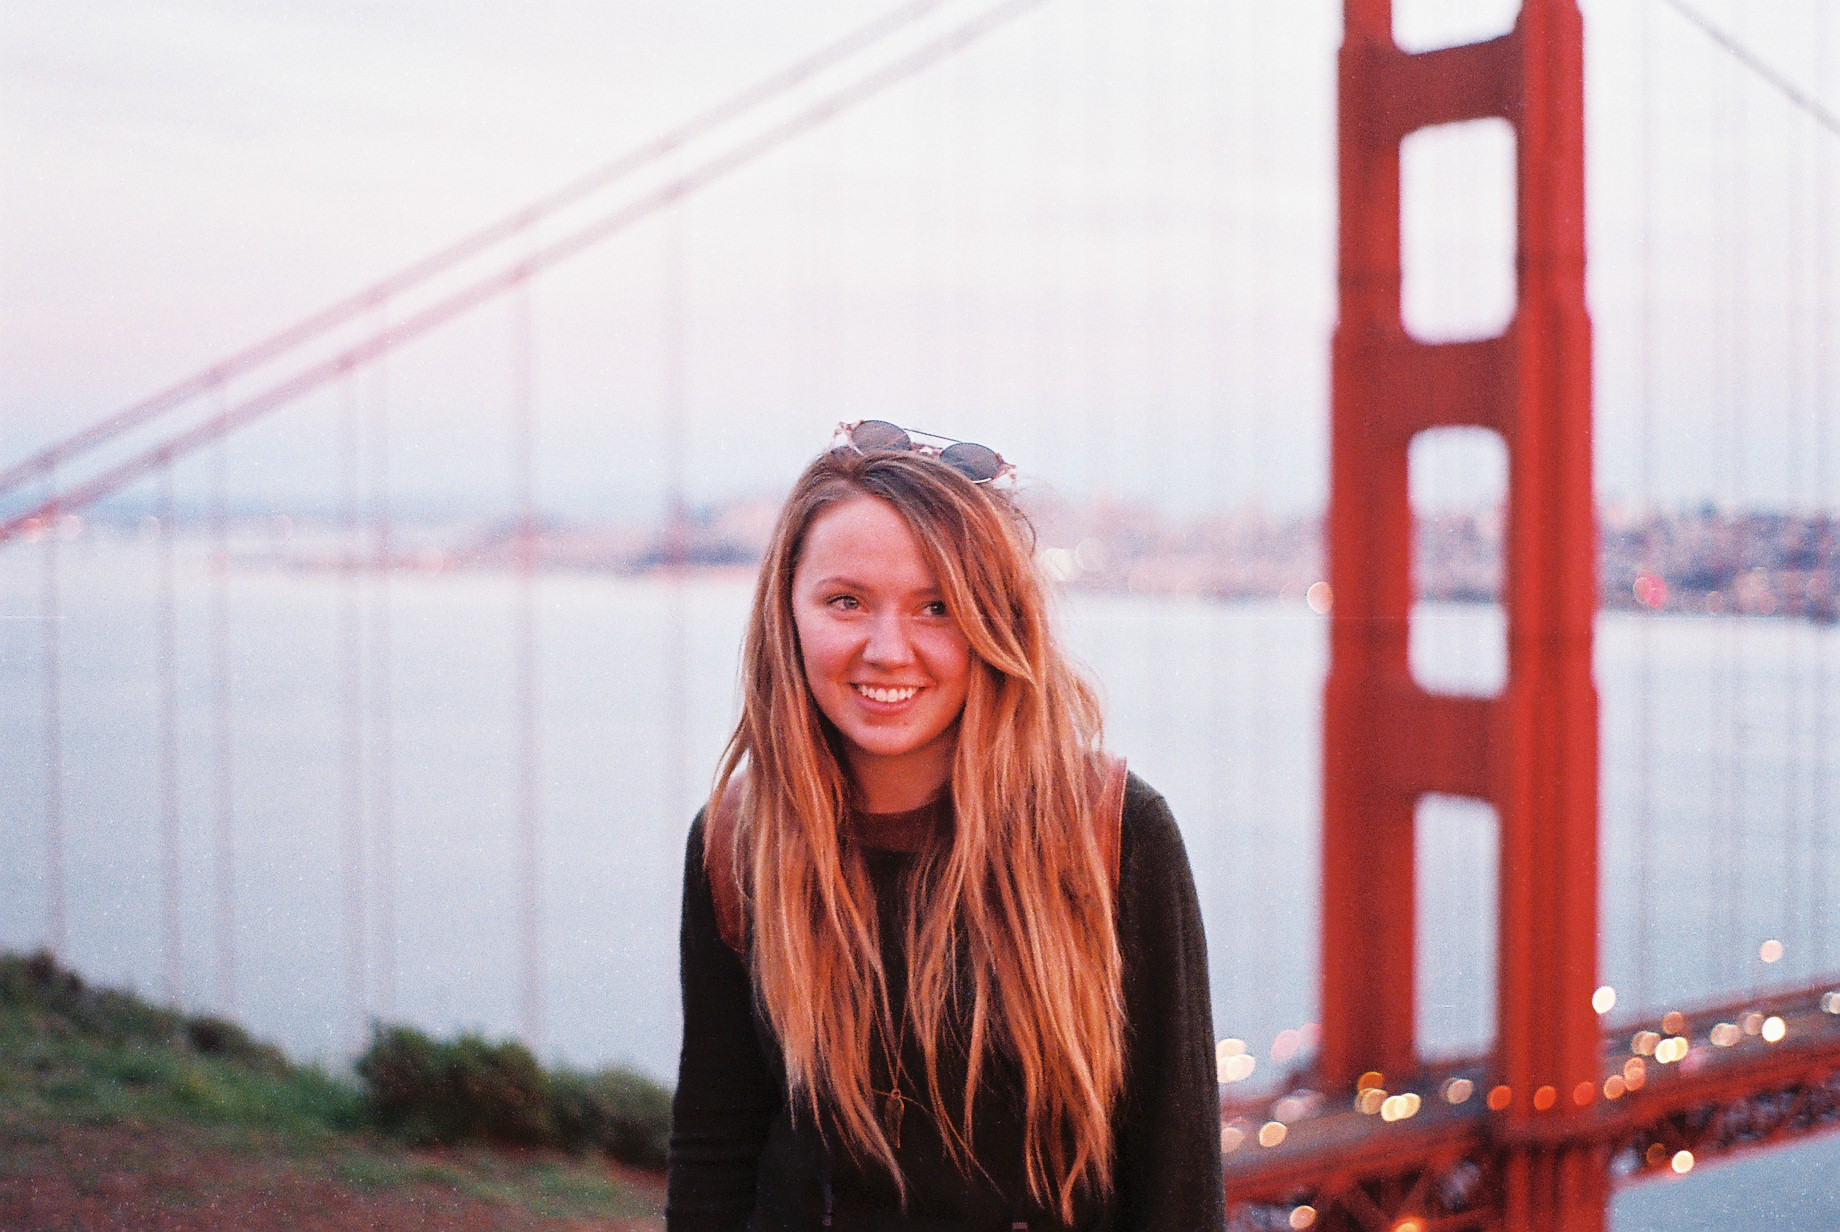 California SF Golden Gate Izzy Portrait Analogue Photo Journal